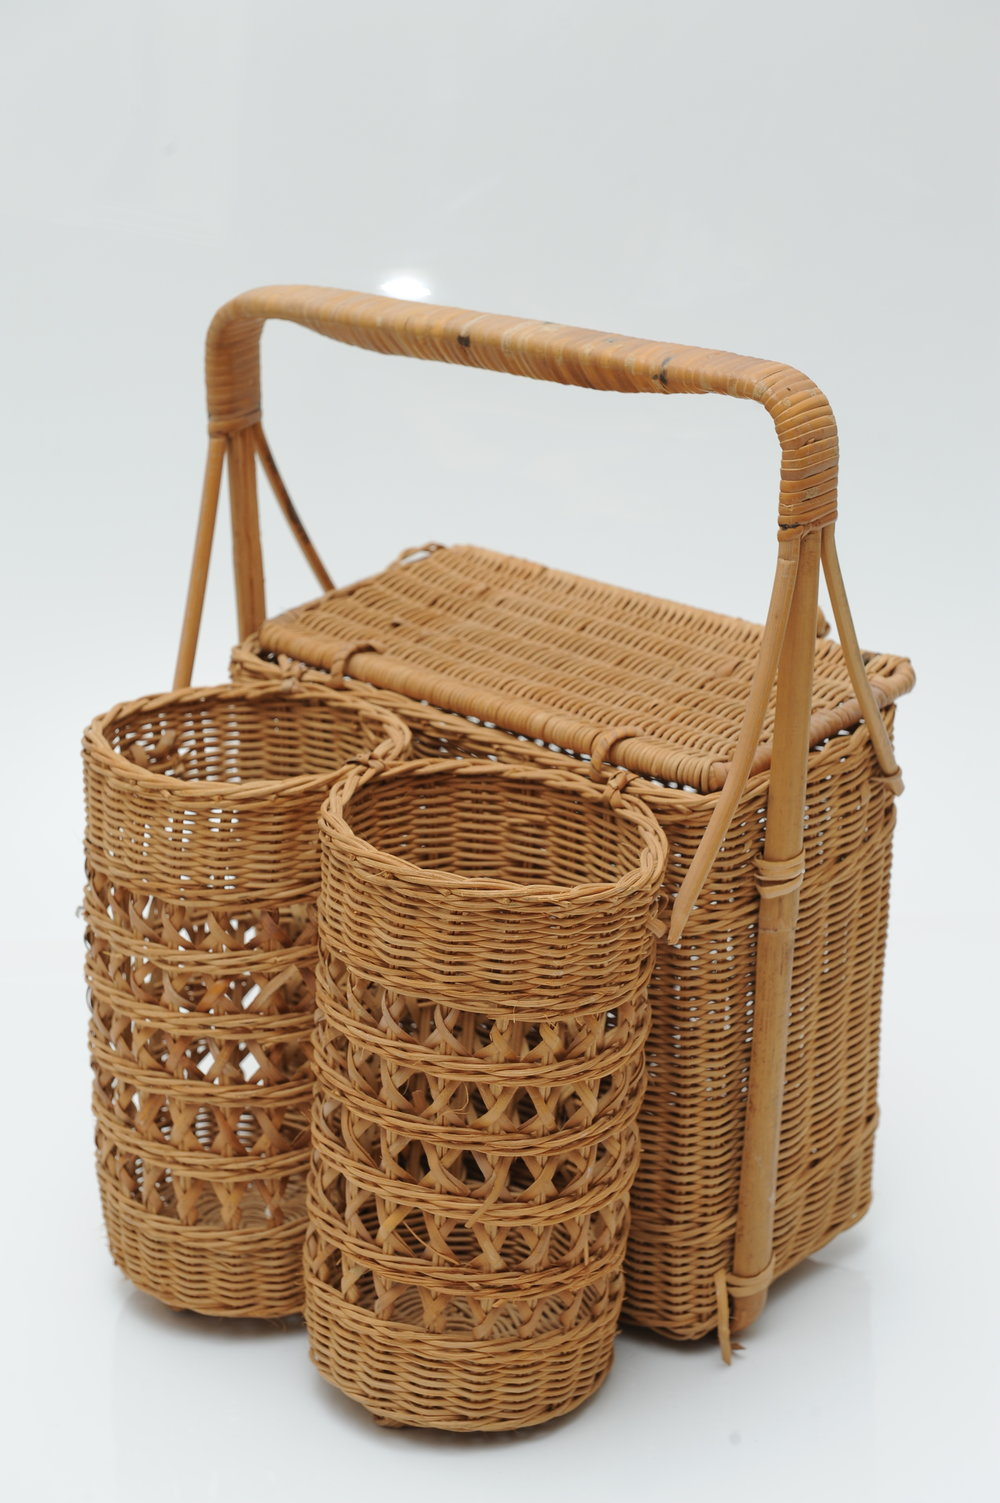 Picnic Basket - Hire for $10